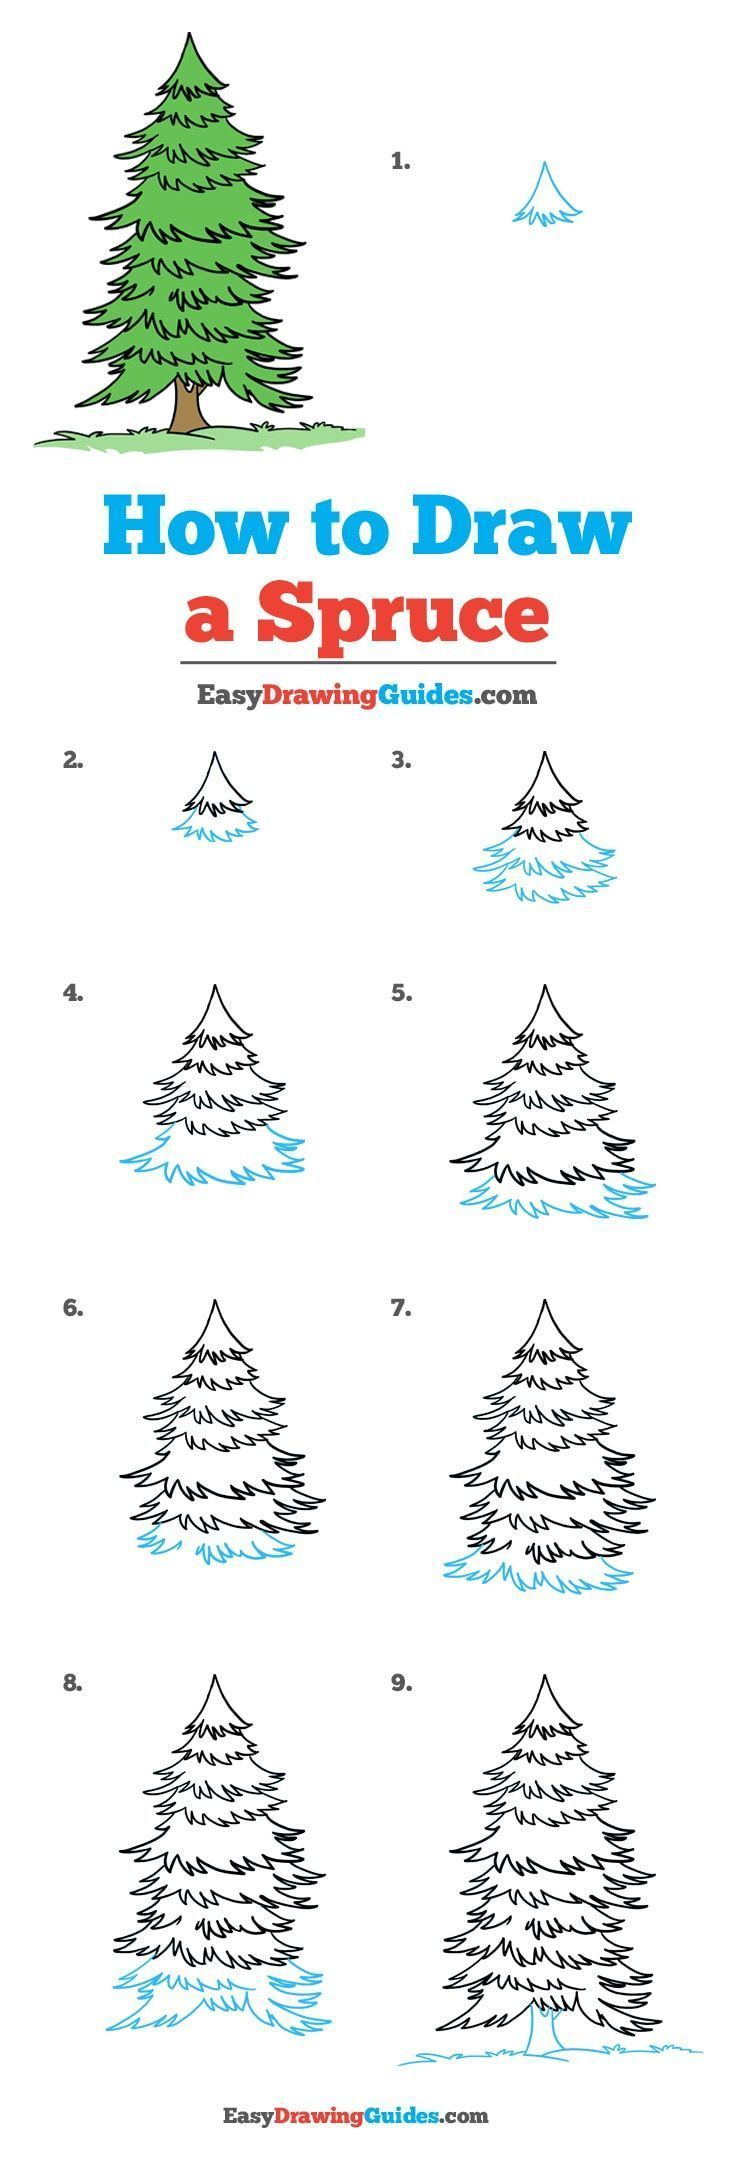 How To Draw A Christmas Tree Step By Step Drawing Tutorial Easy Peasy And Fun Christmas Tree Drawing Easy Easy Christmas Drawings Christmas Tree Drawing